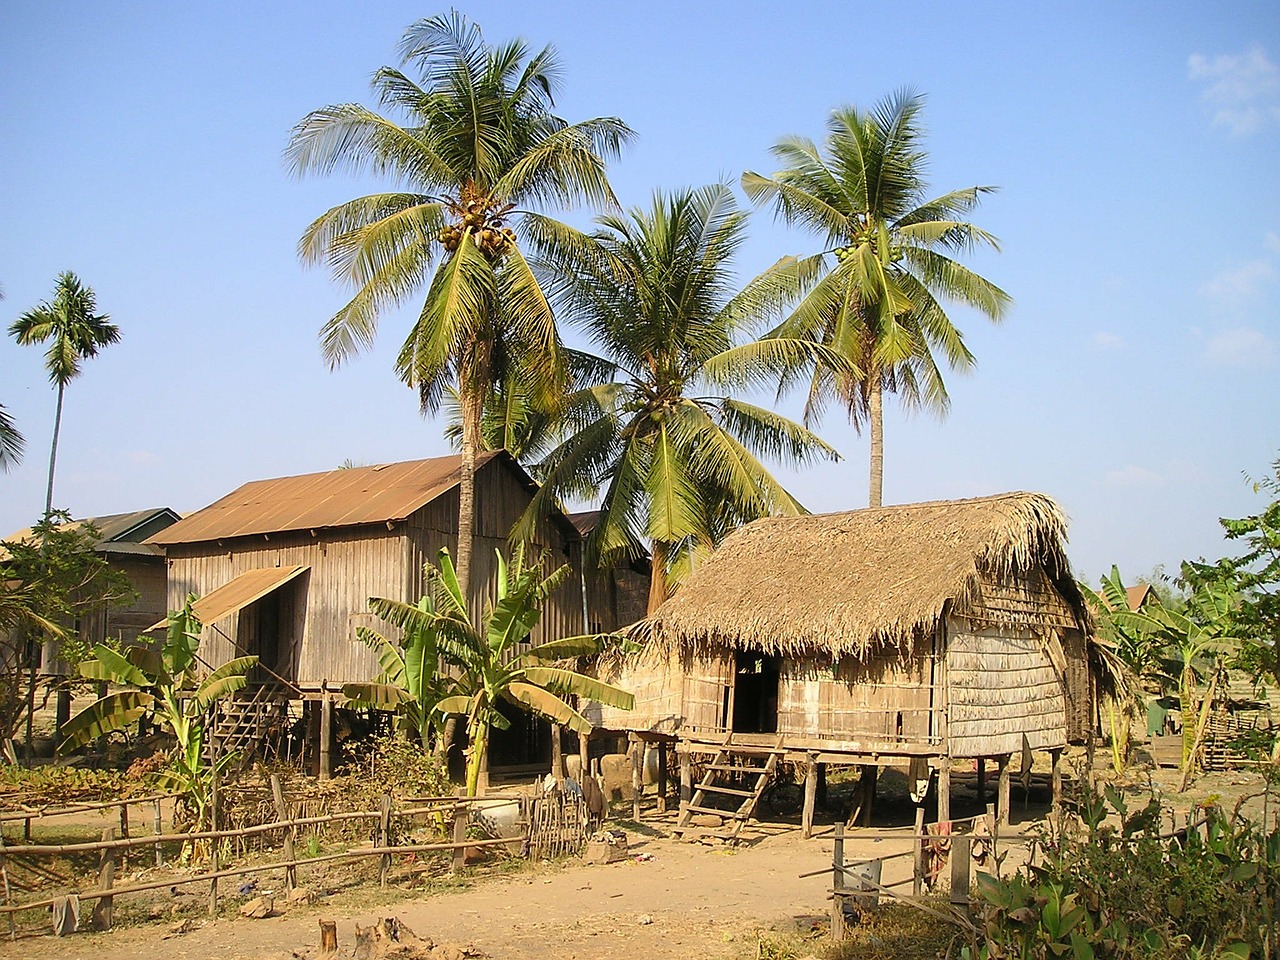 cottages cambodia land free photo